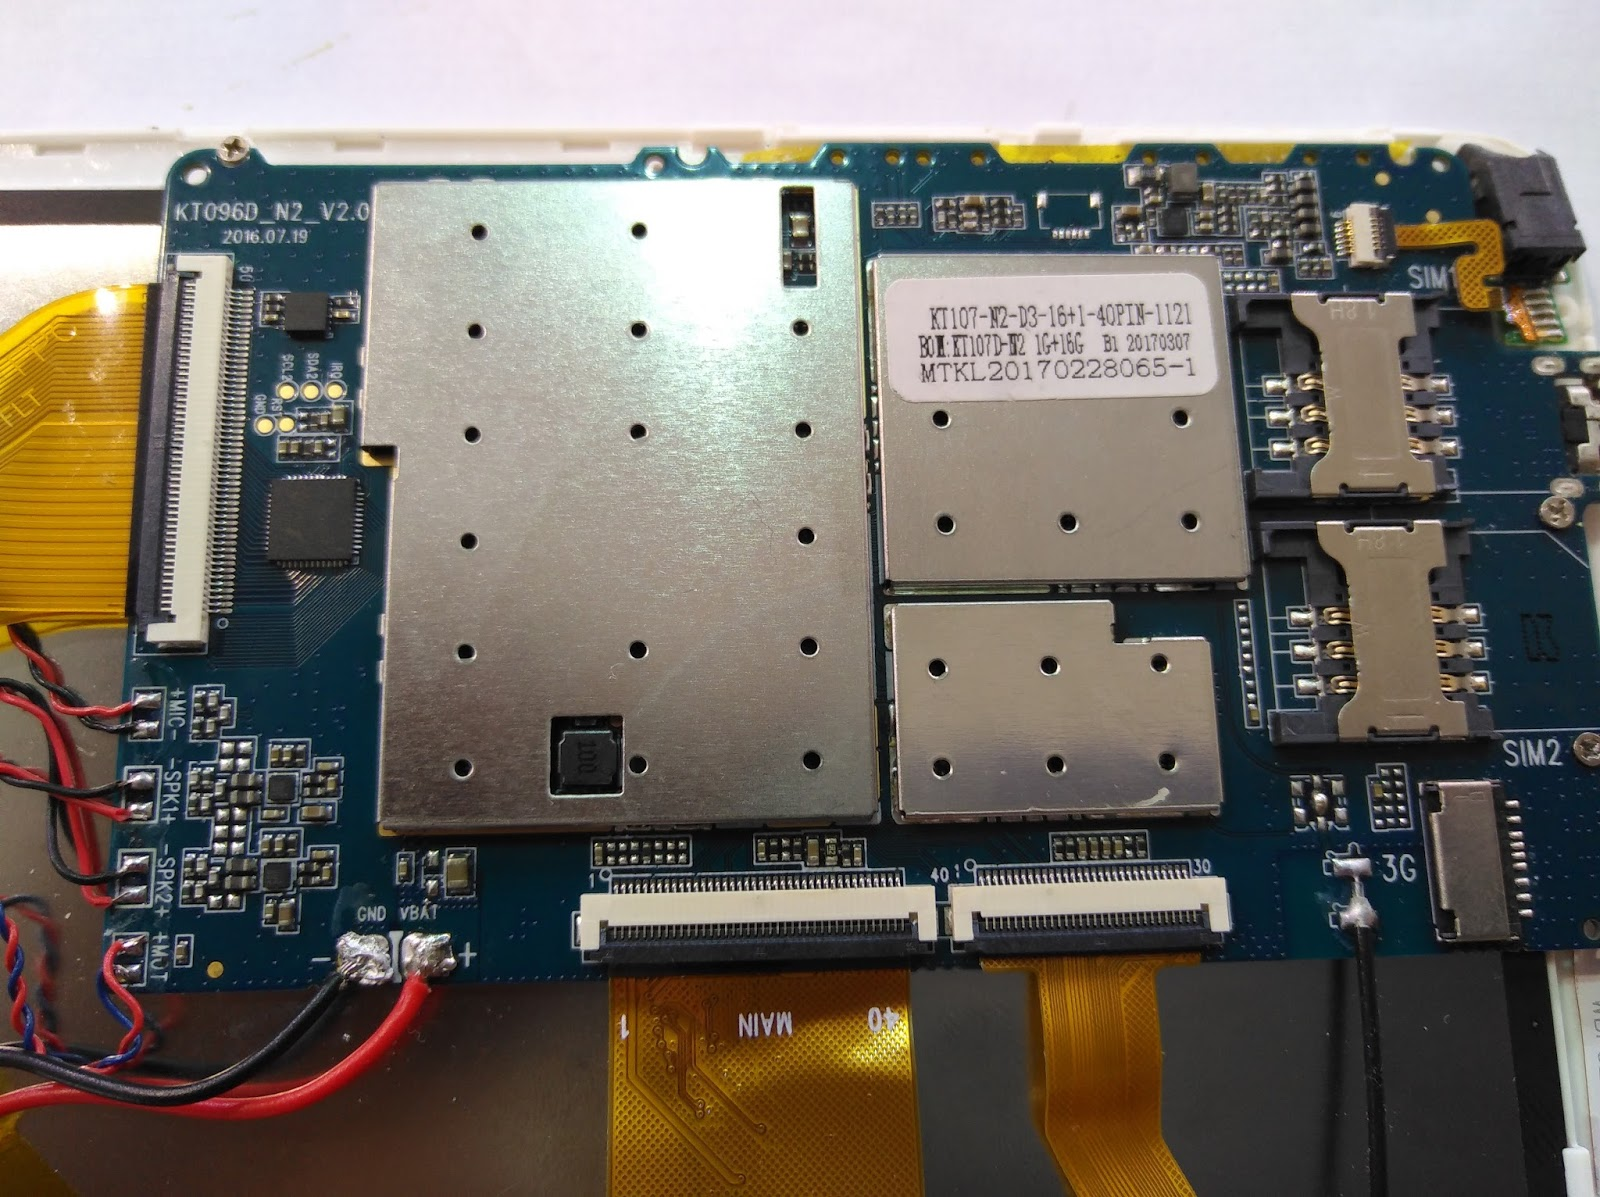 Hpc kt107 firmware tested flash file cm2 read file download from